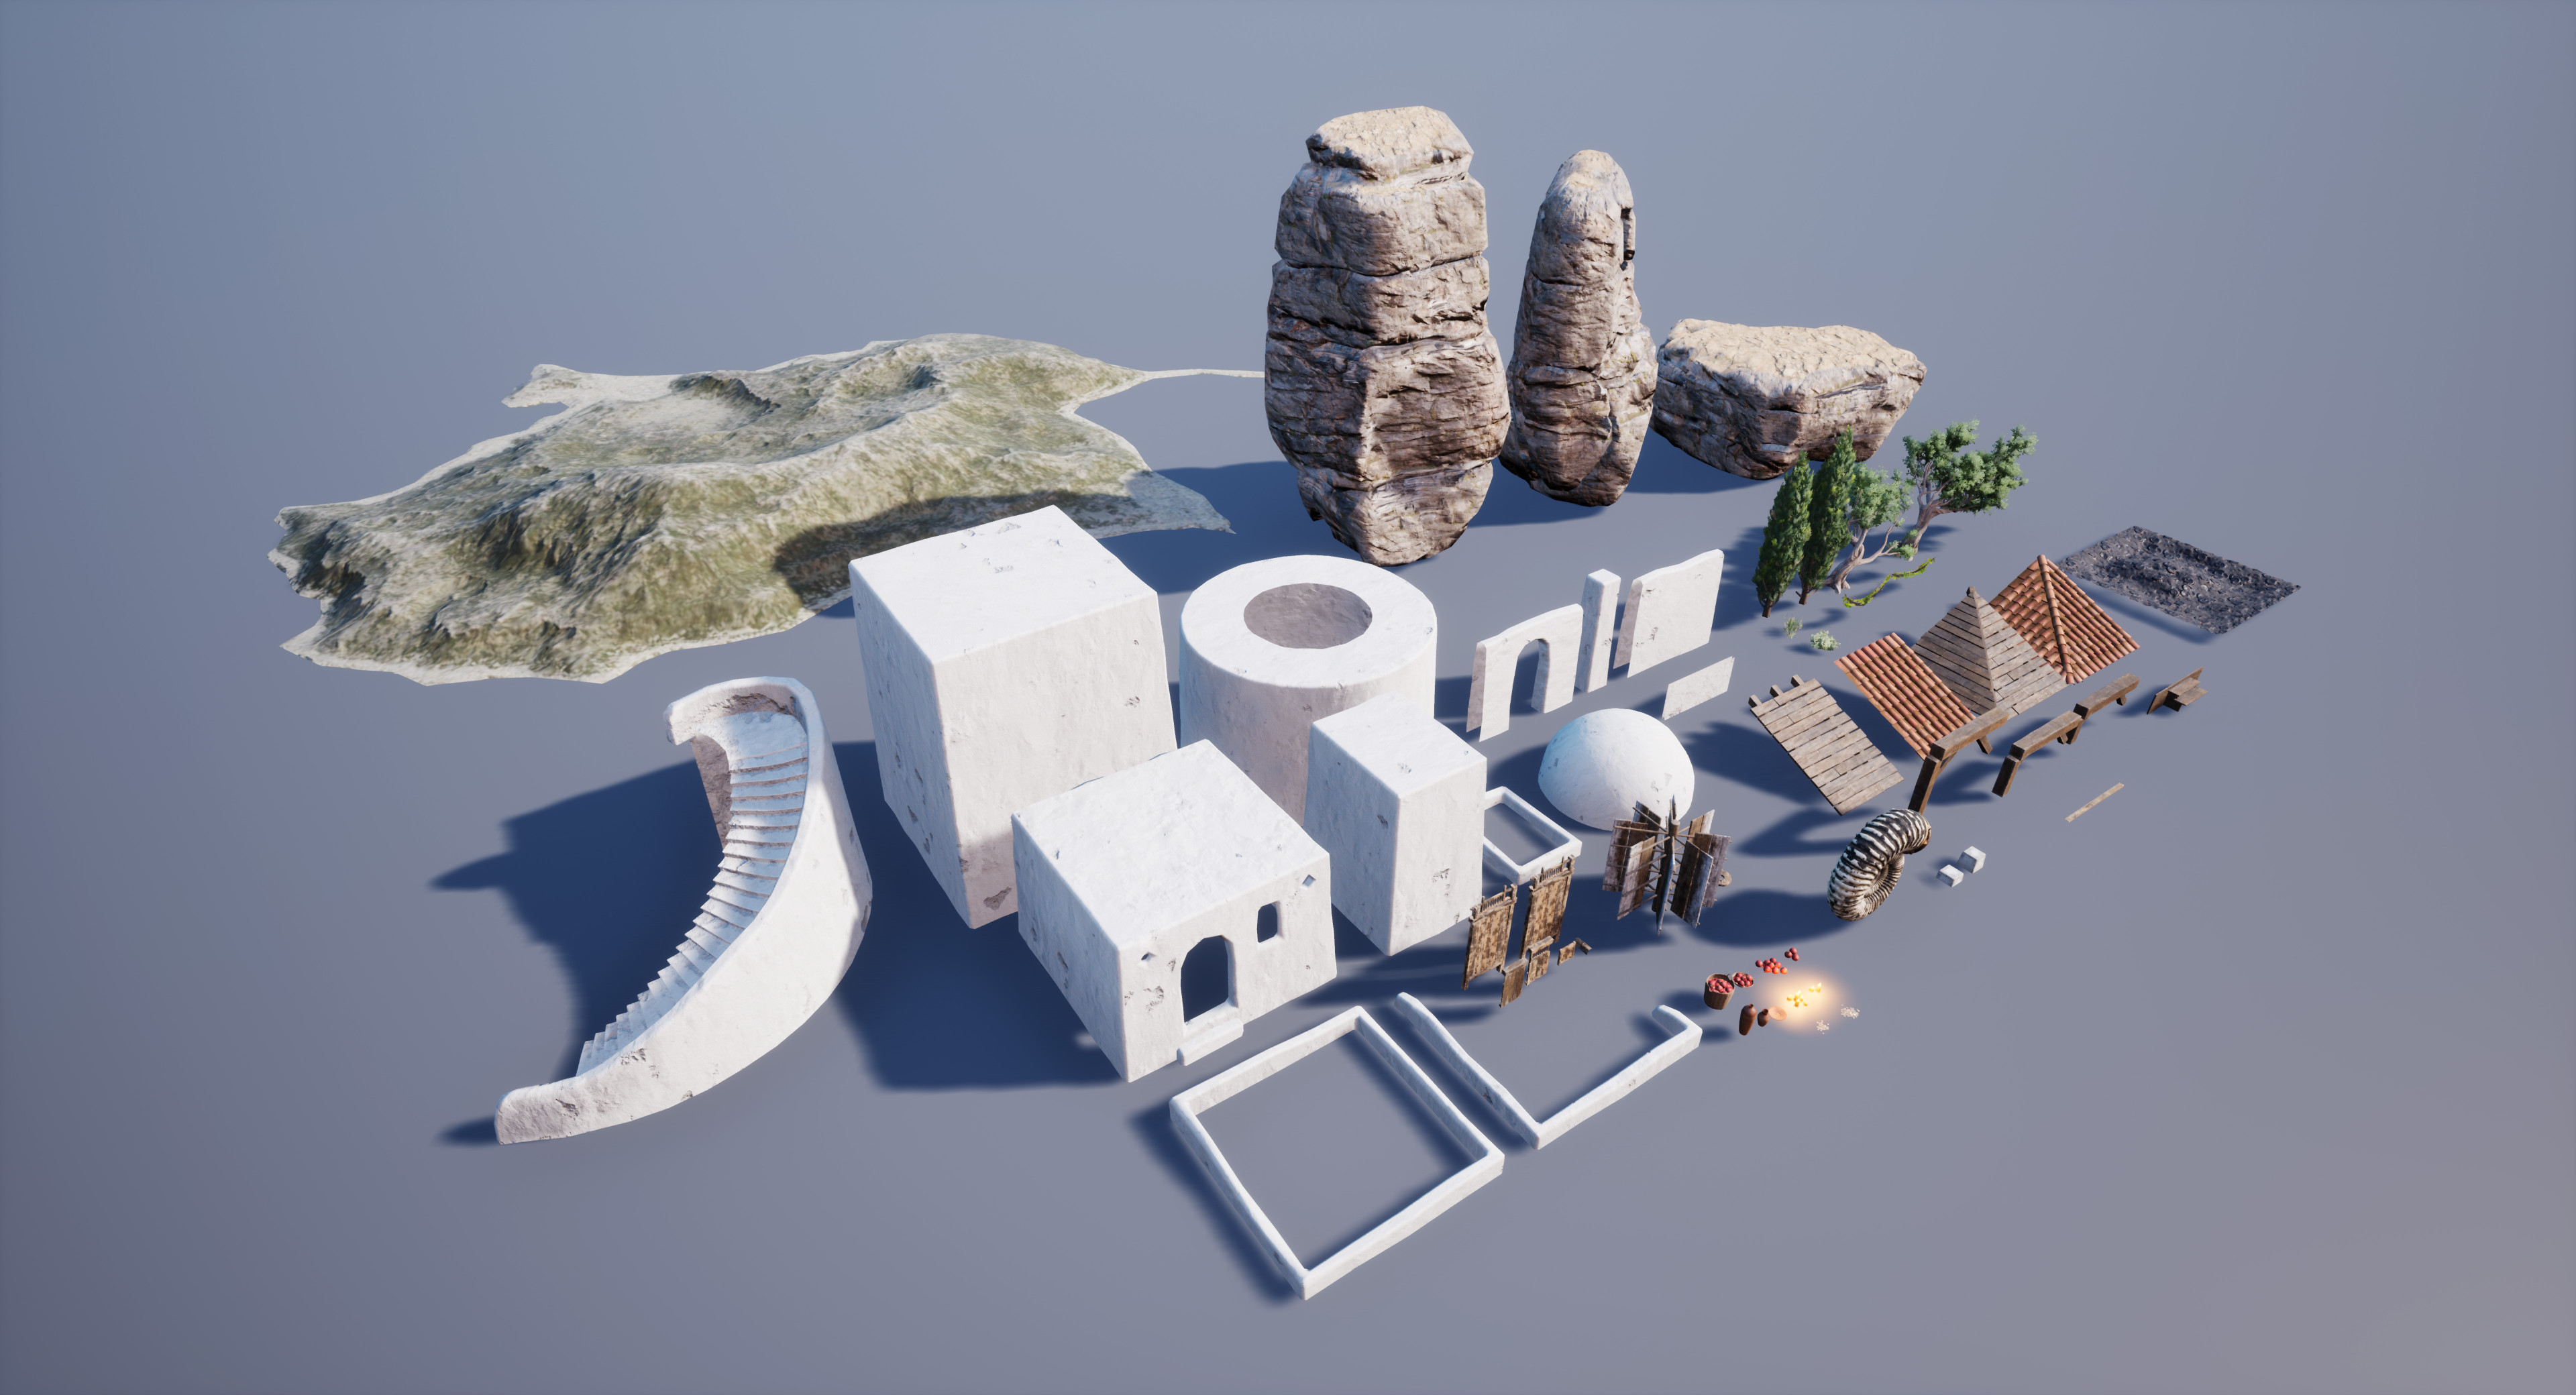 Most of the assets used the build the environment.